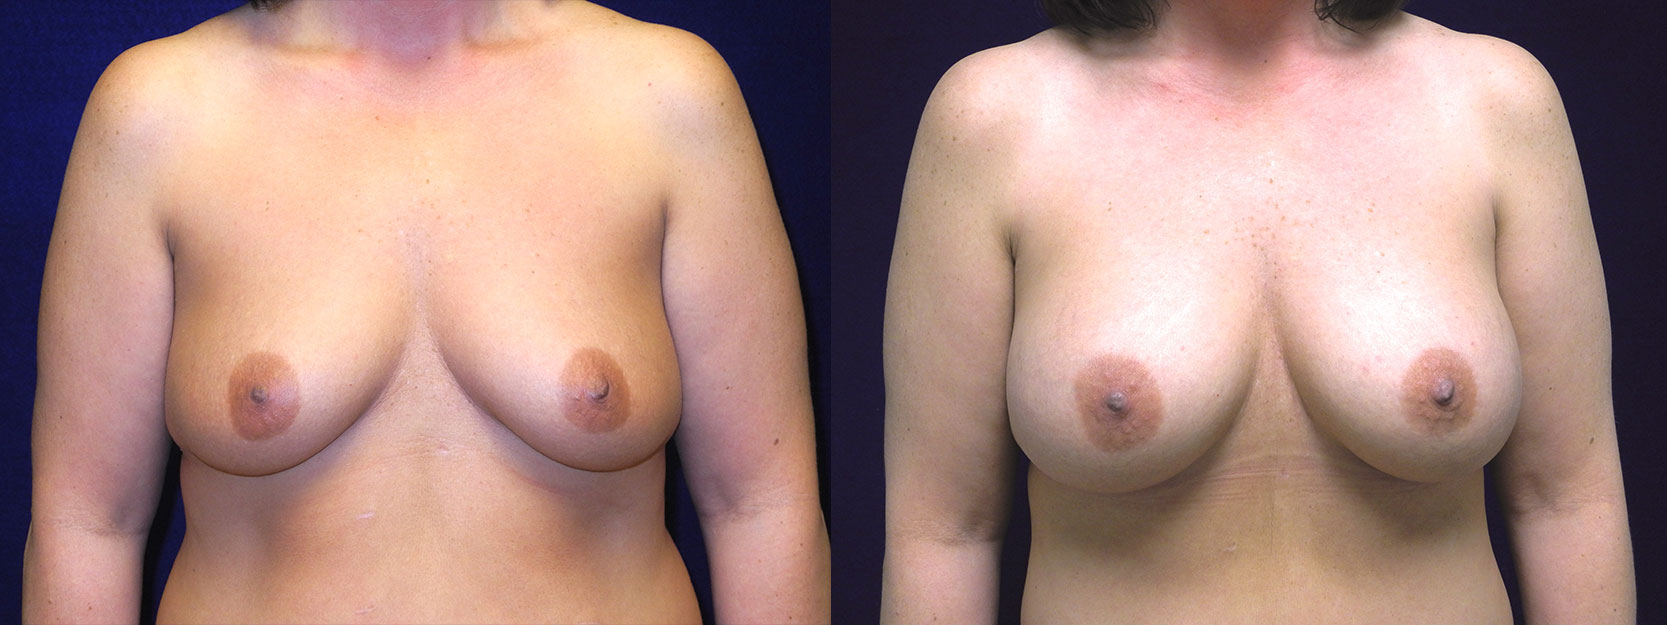 Frontatl View - Breast Augmentation After Weight Loss